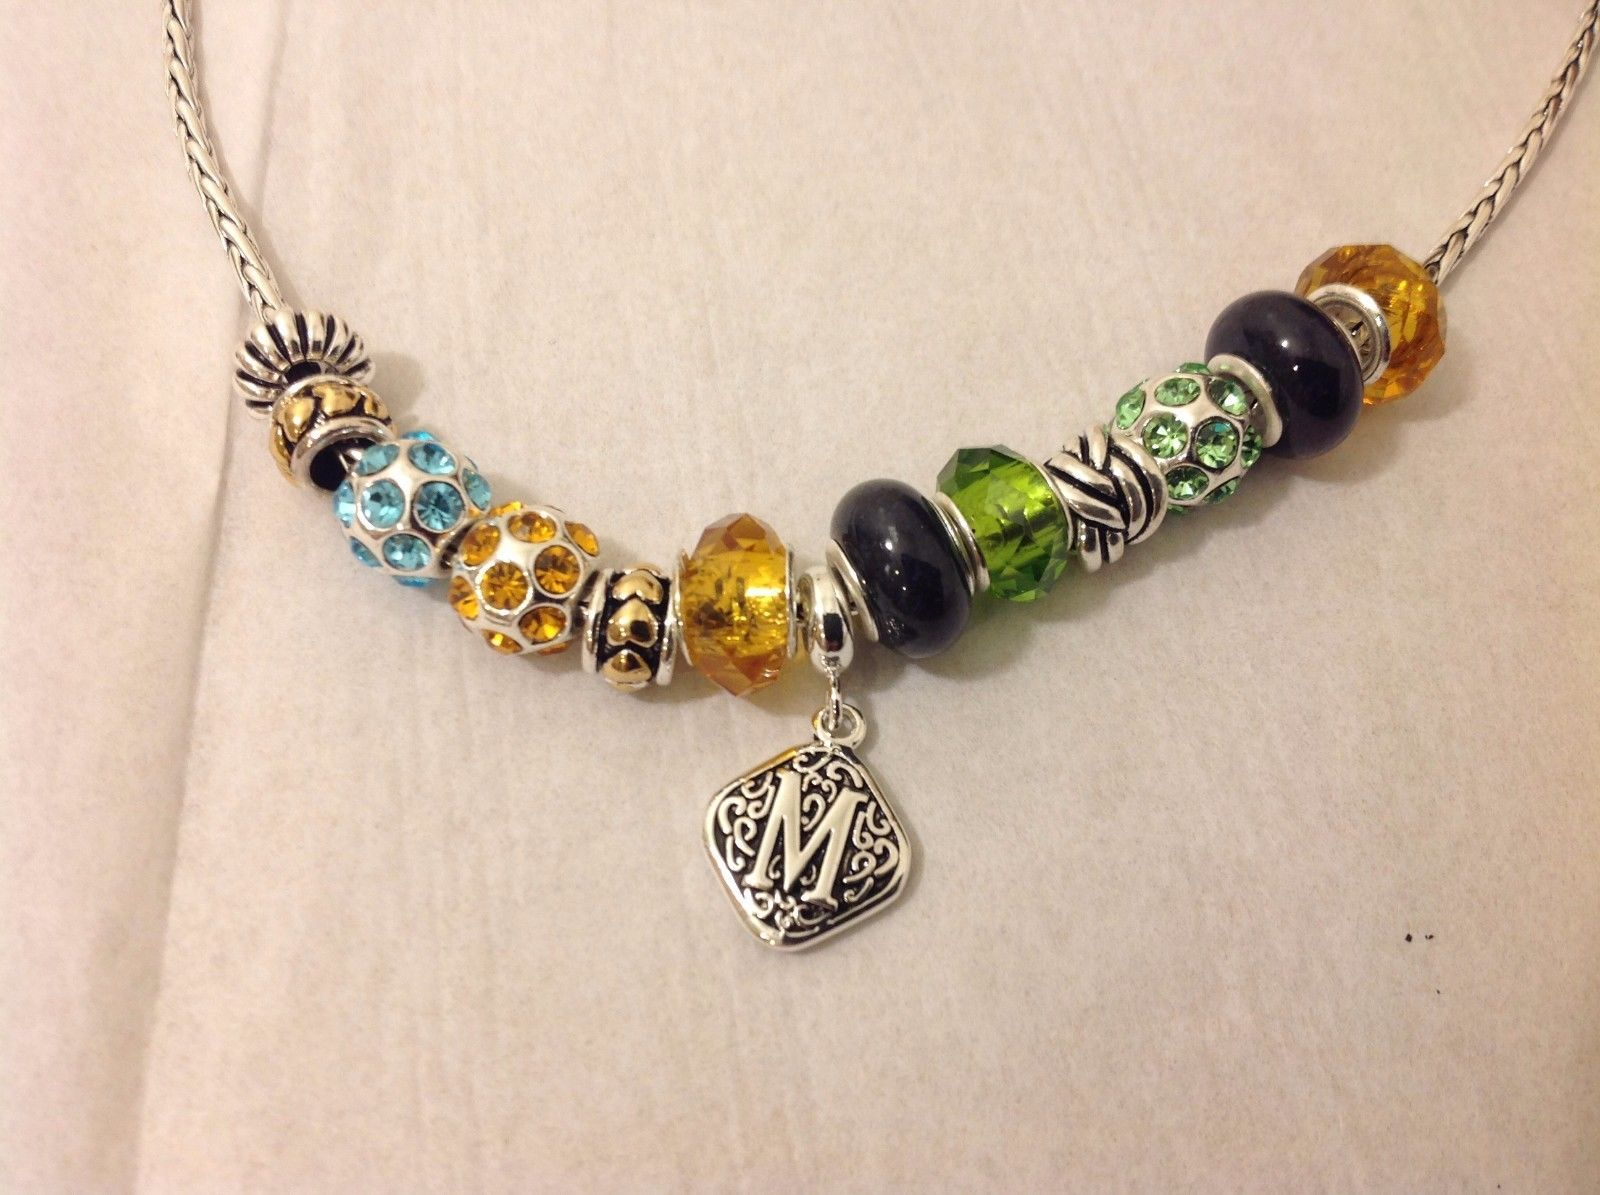 NEW Silver Toned Beaded Necklace Crystal Elements Monogrammed M Woven Pattern